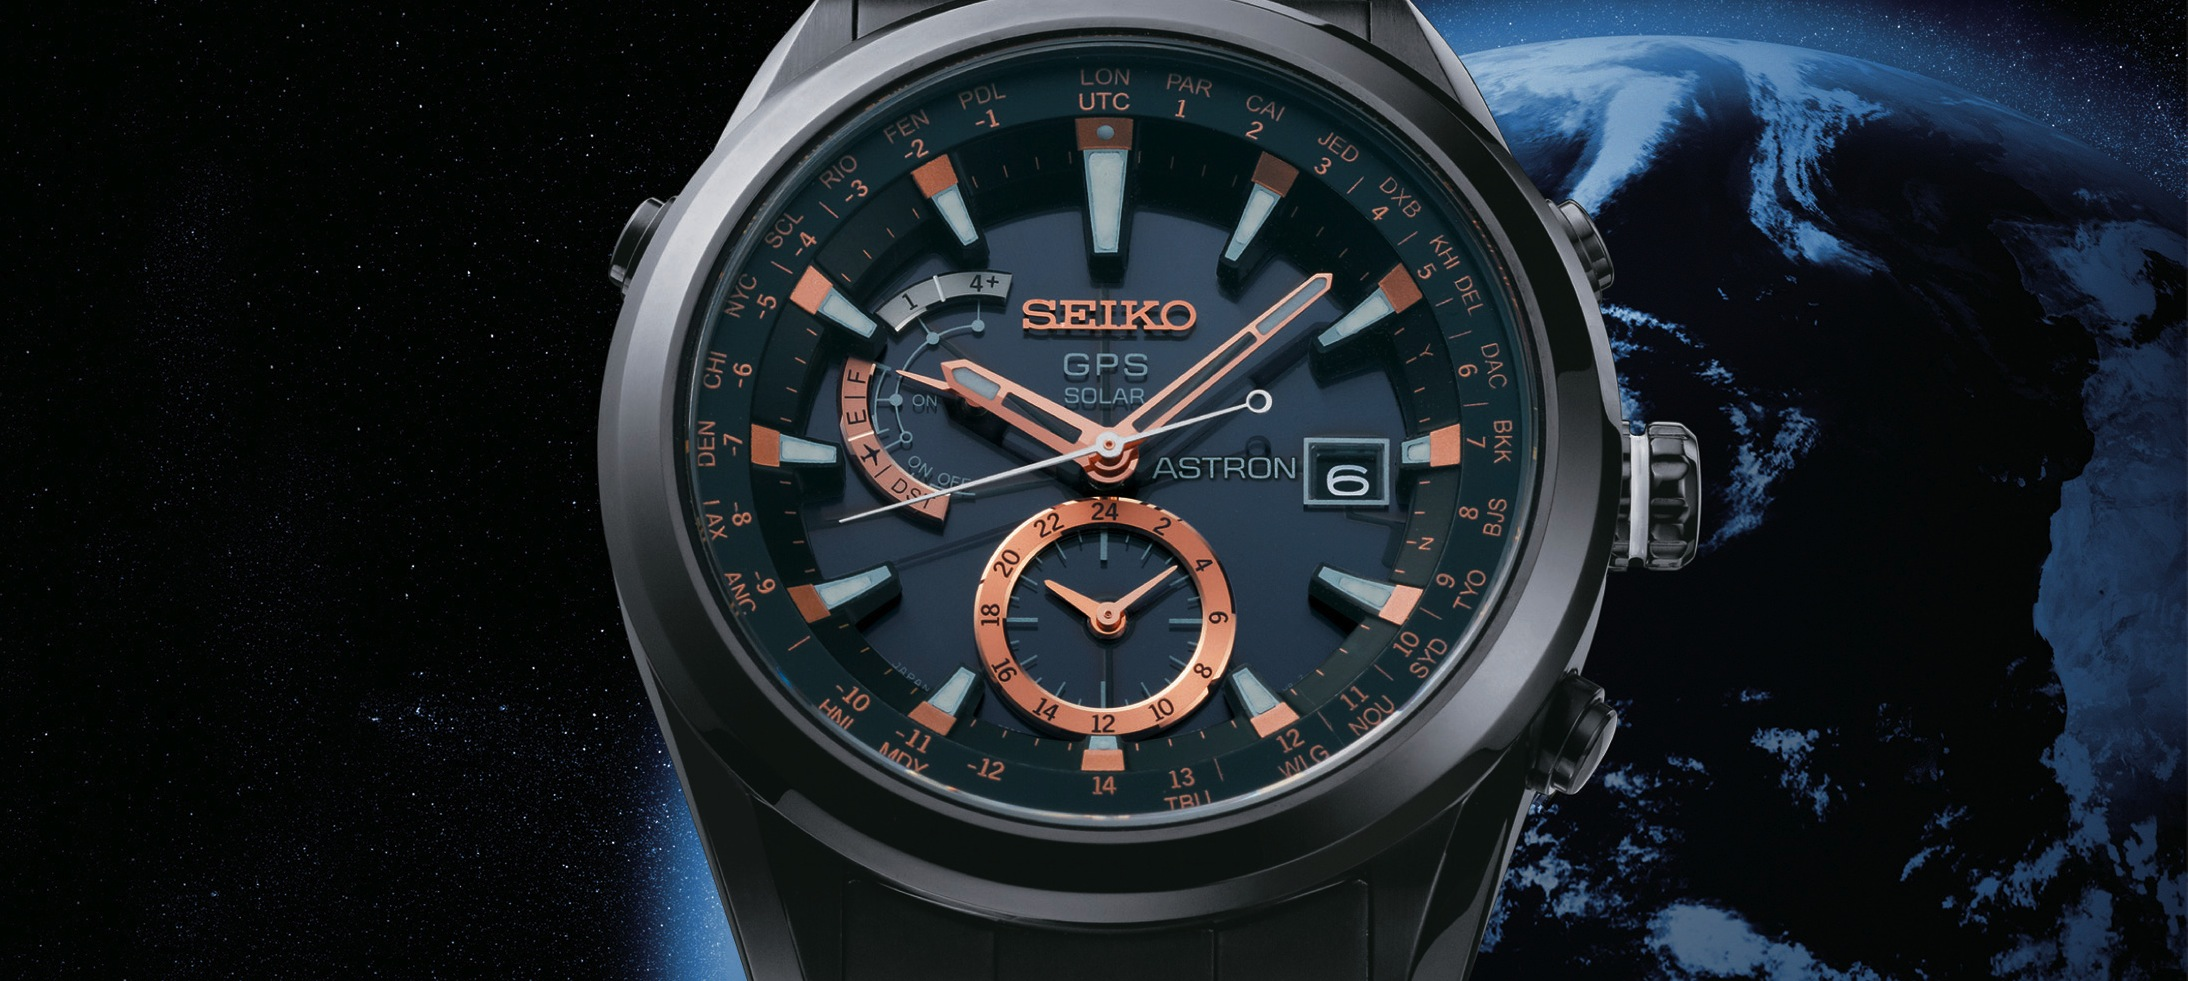 Seiko Astron GPS (Limited Edition)